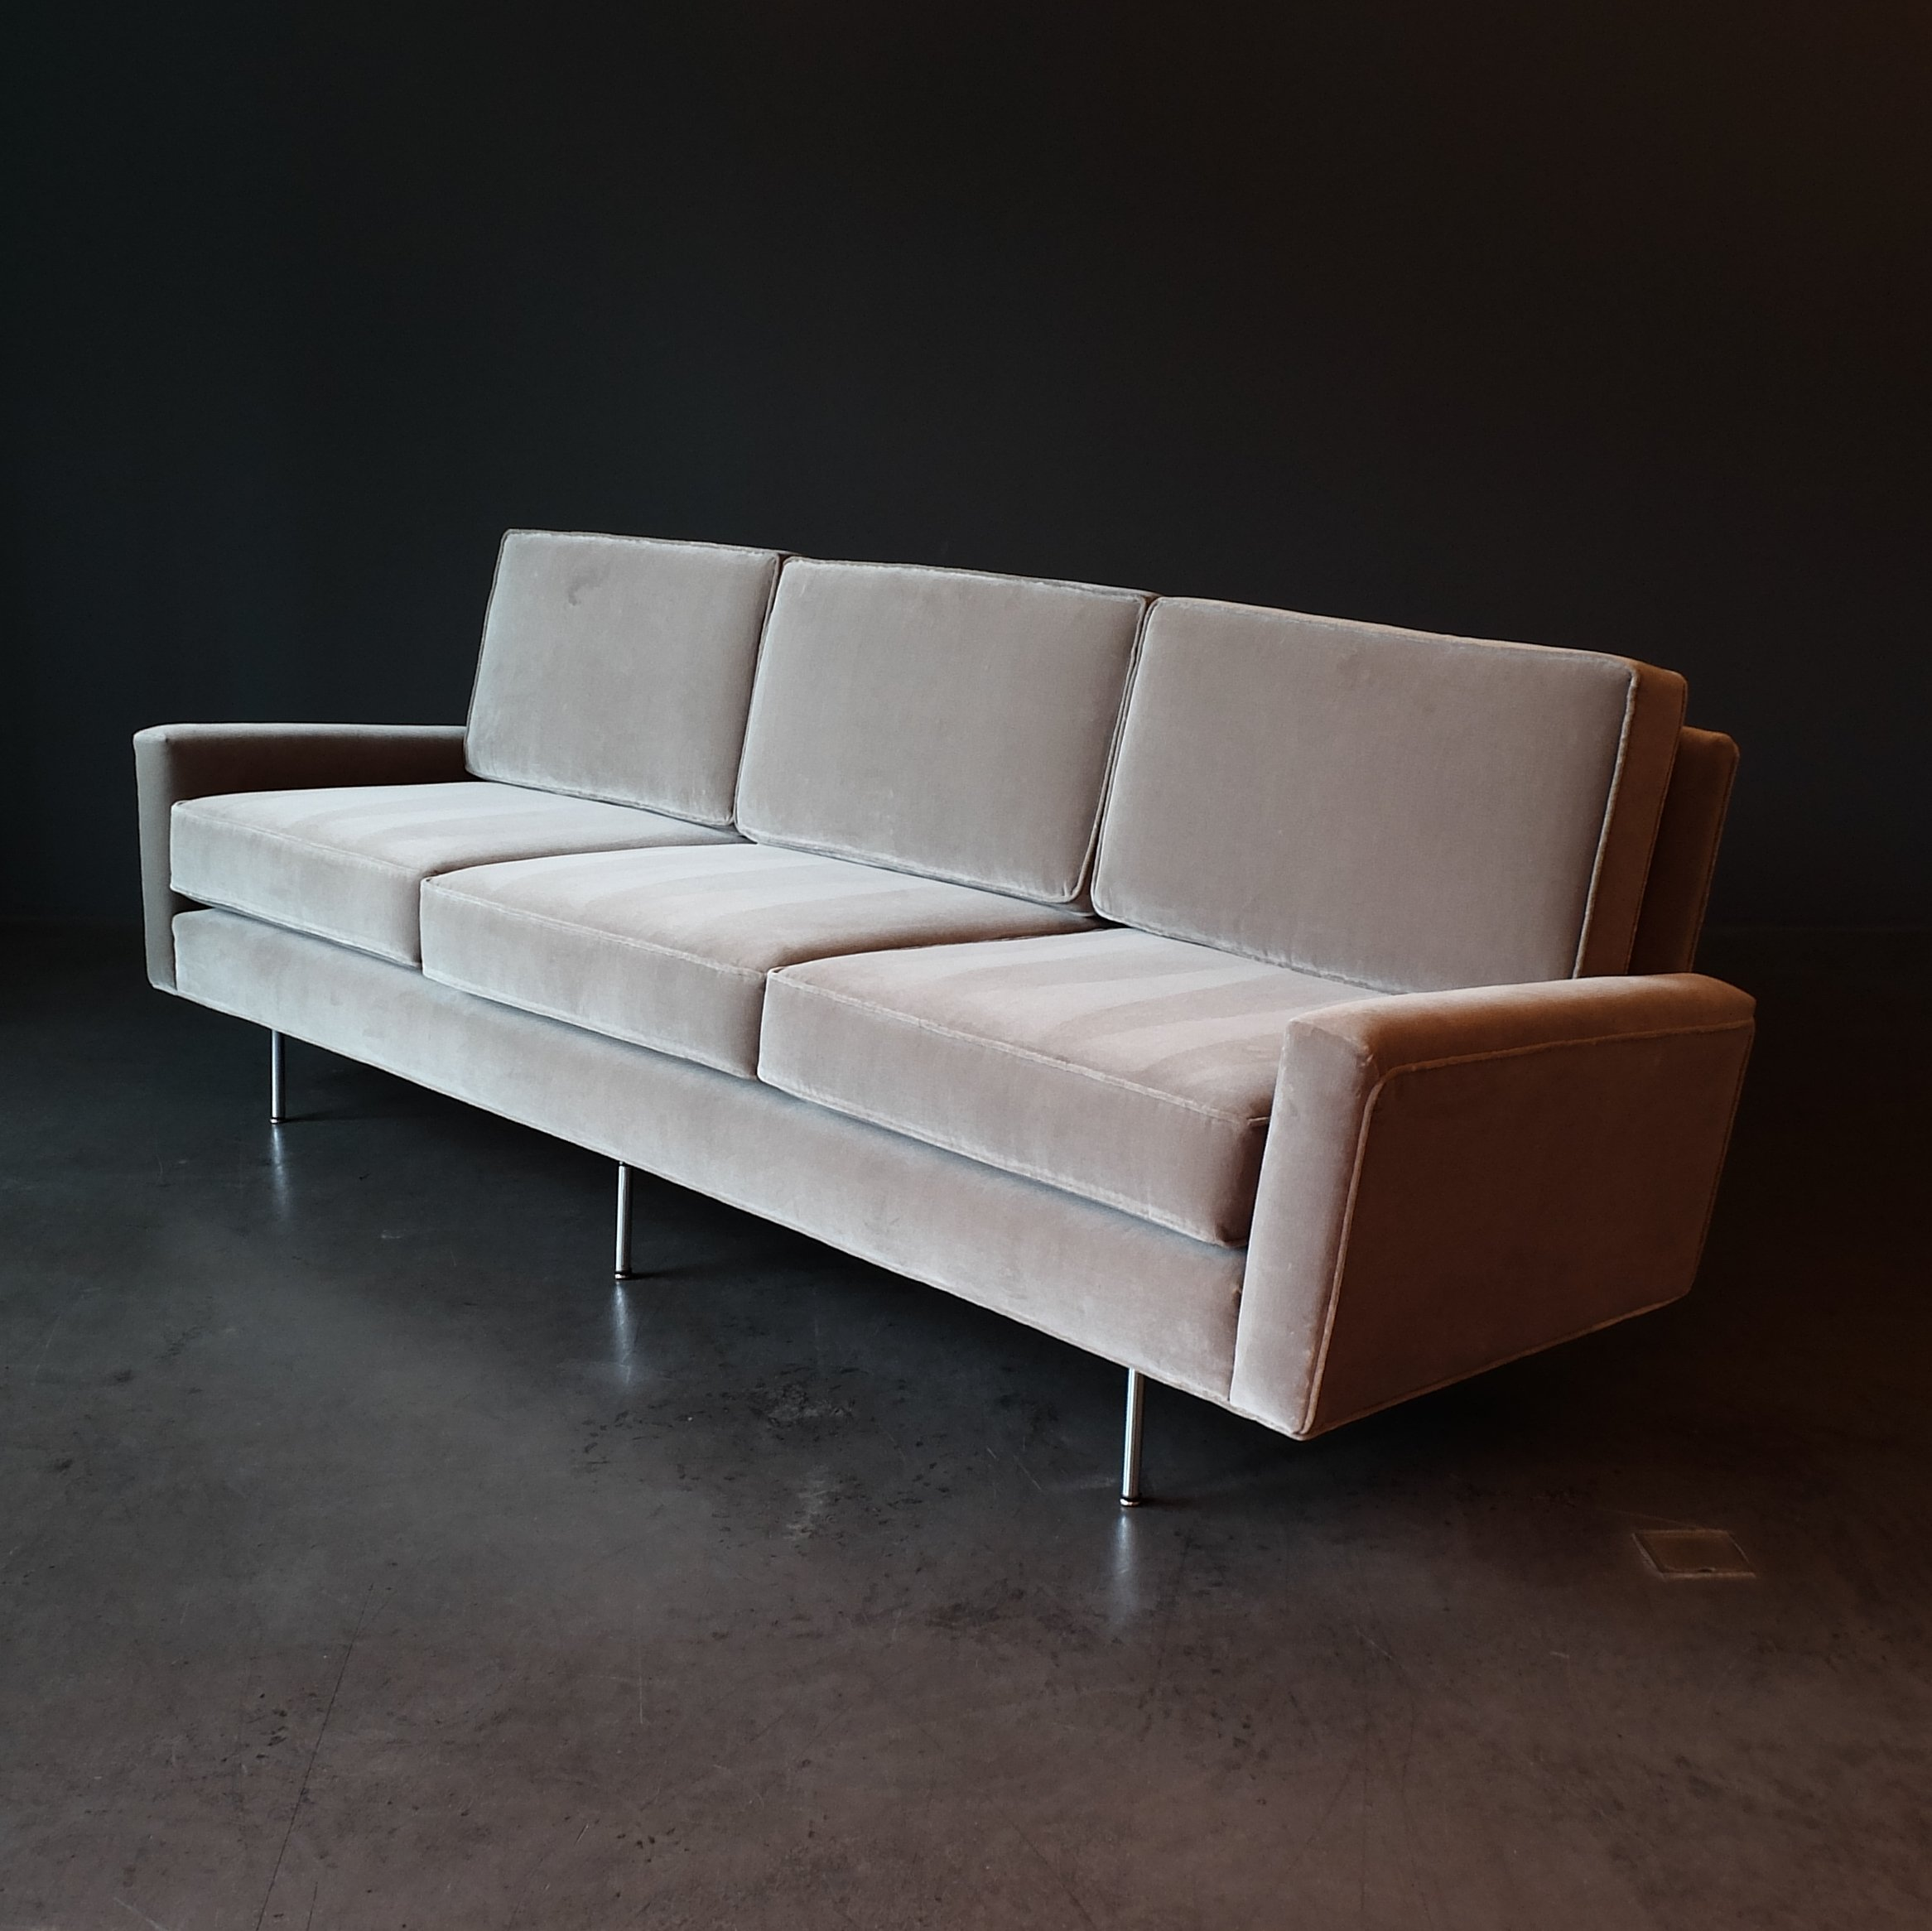 Florence Knoll Sessel 3 Seater Florence Knoll Sofa 1960s